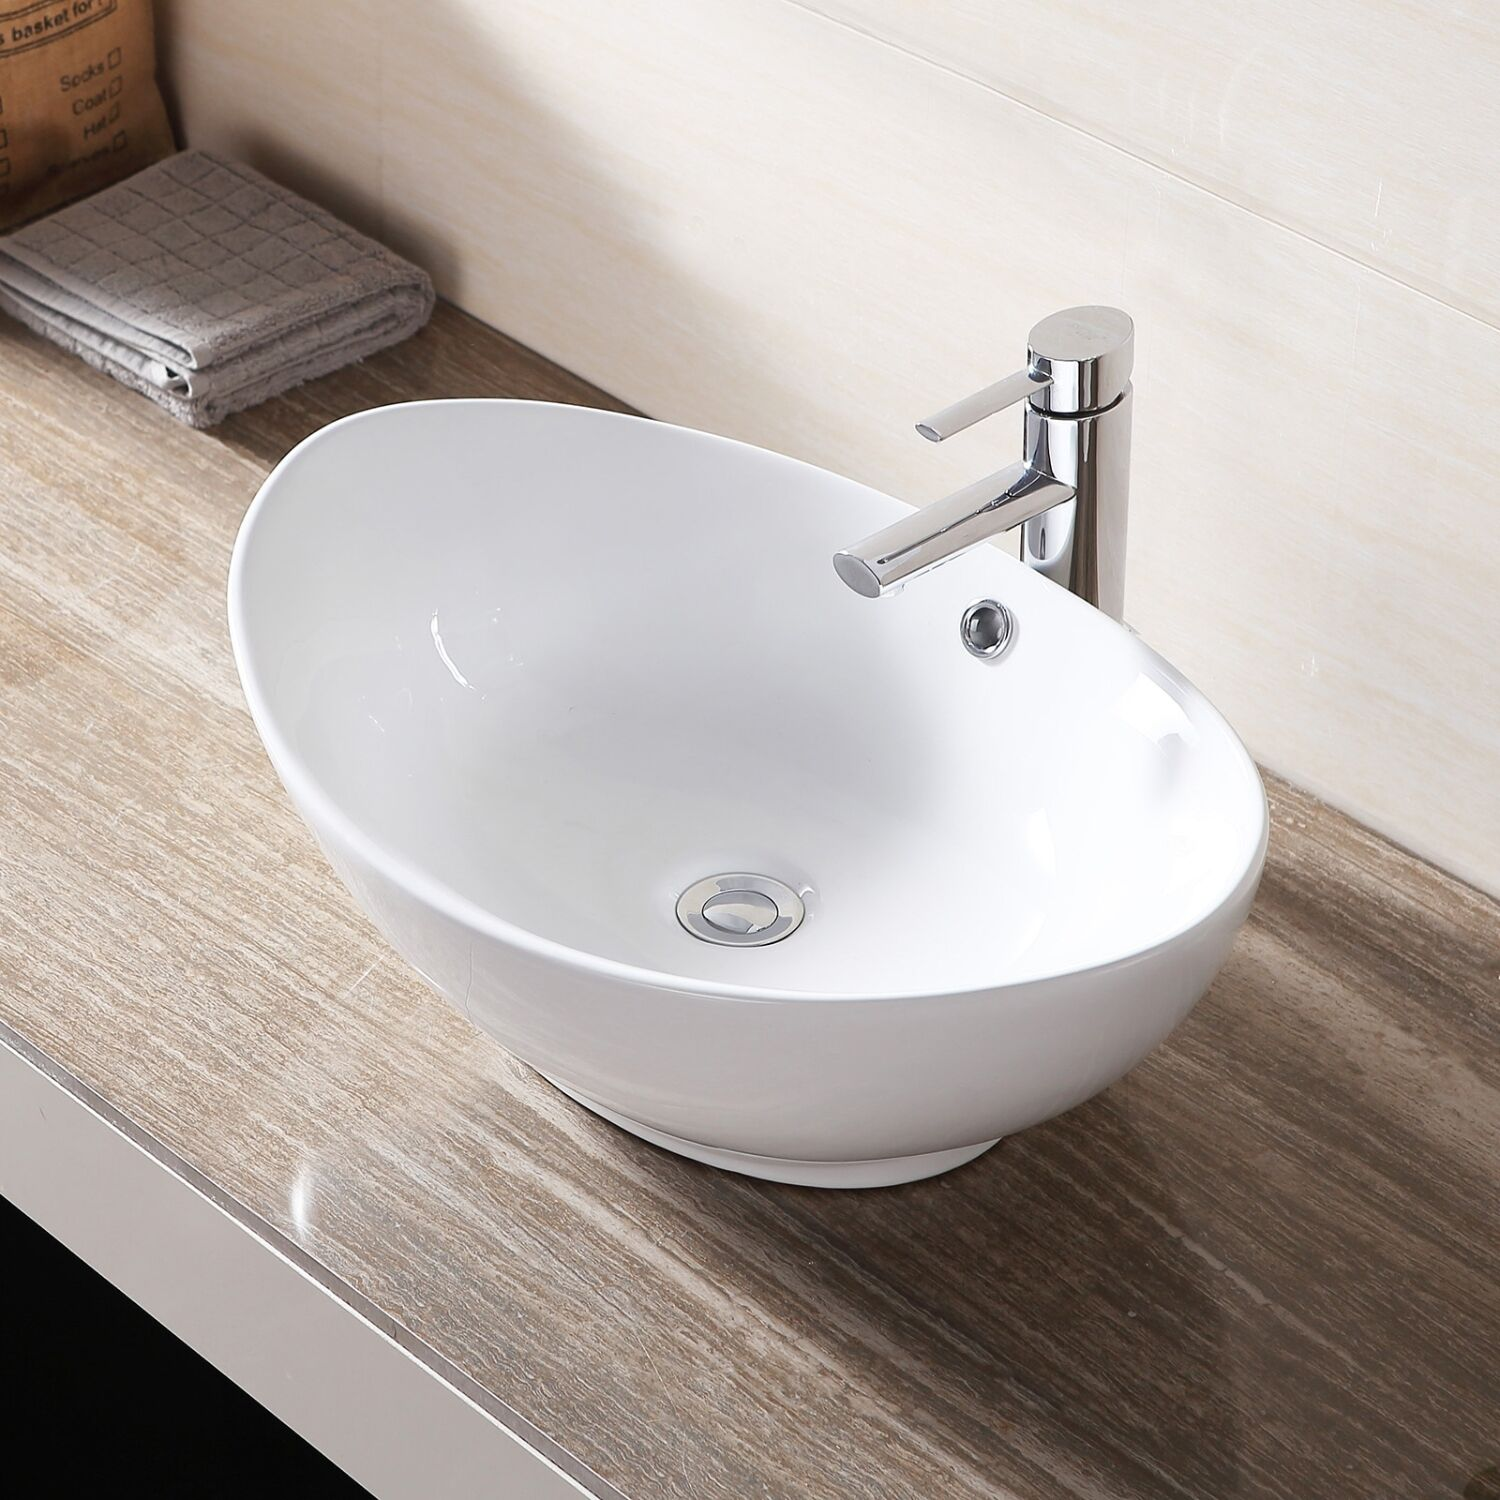 White Porcelain Ceramic Bathroom Sink Vessel Vanity Basin Bowl W Pop Up Drain Ebay